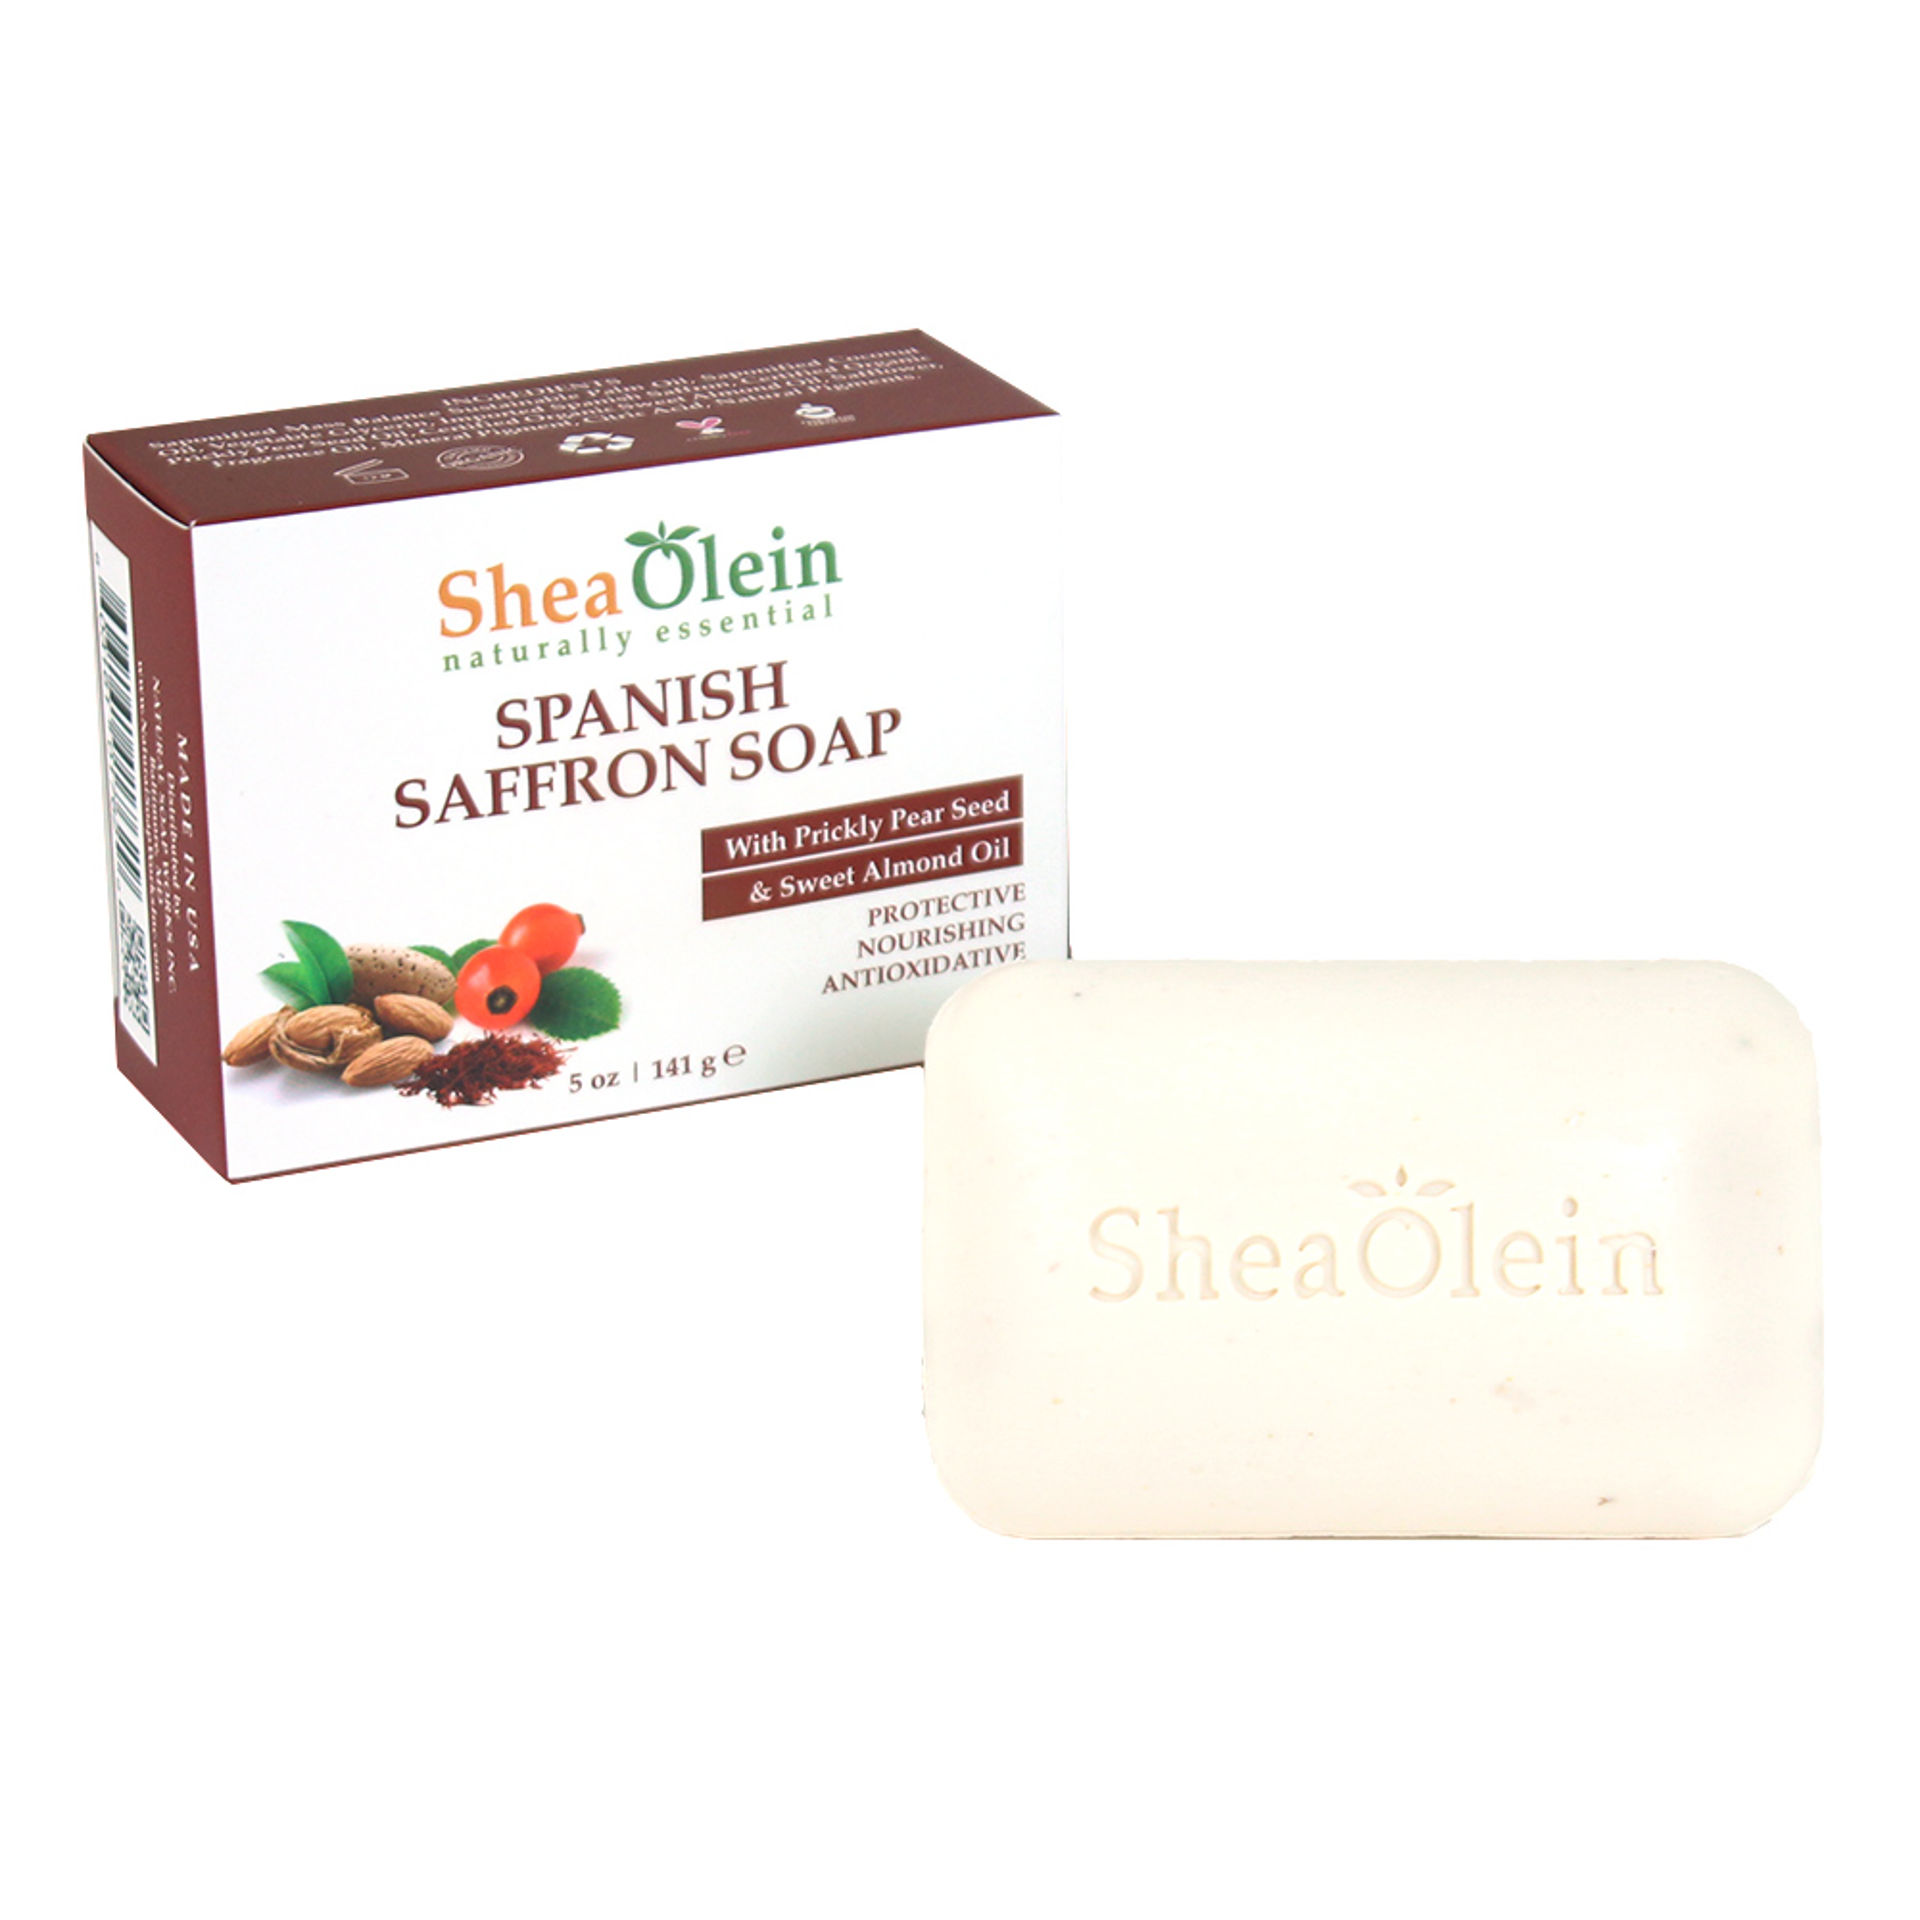 Picture of Spanish Saffron Soap - 5 oz.